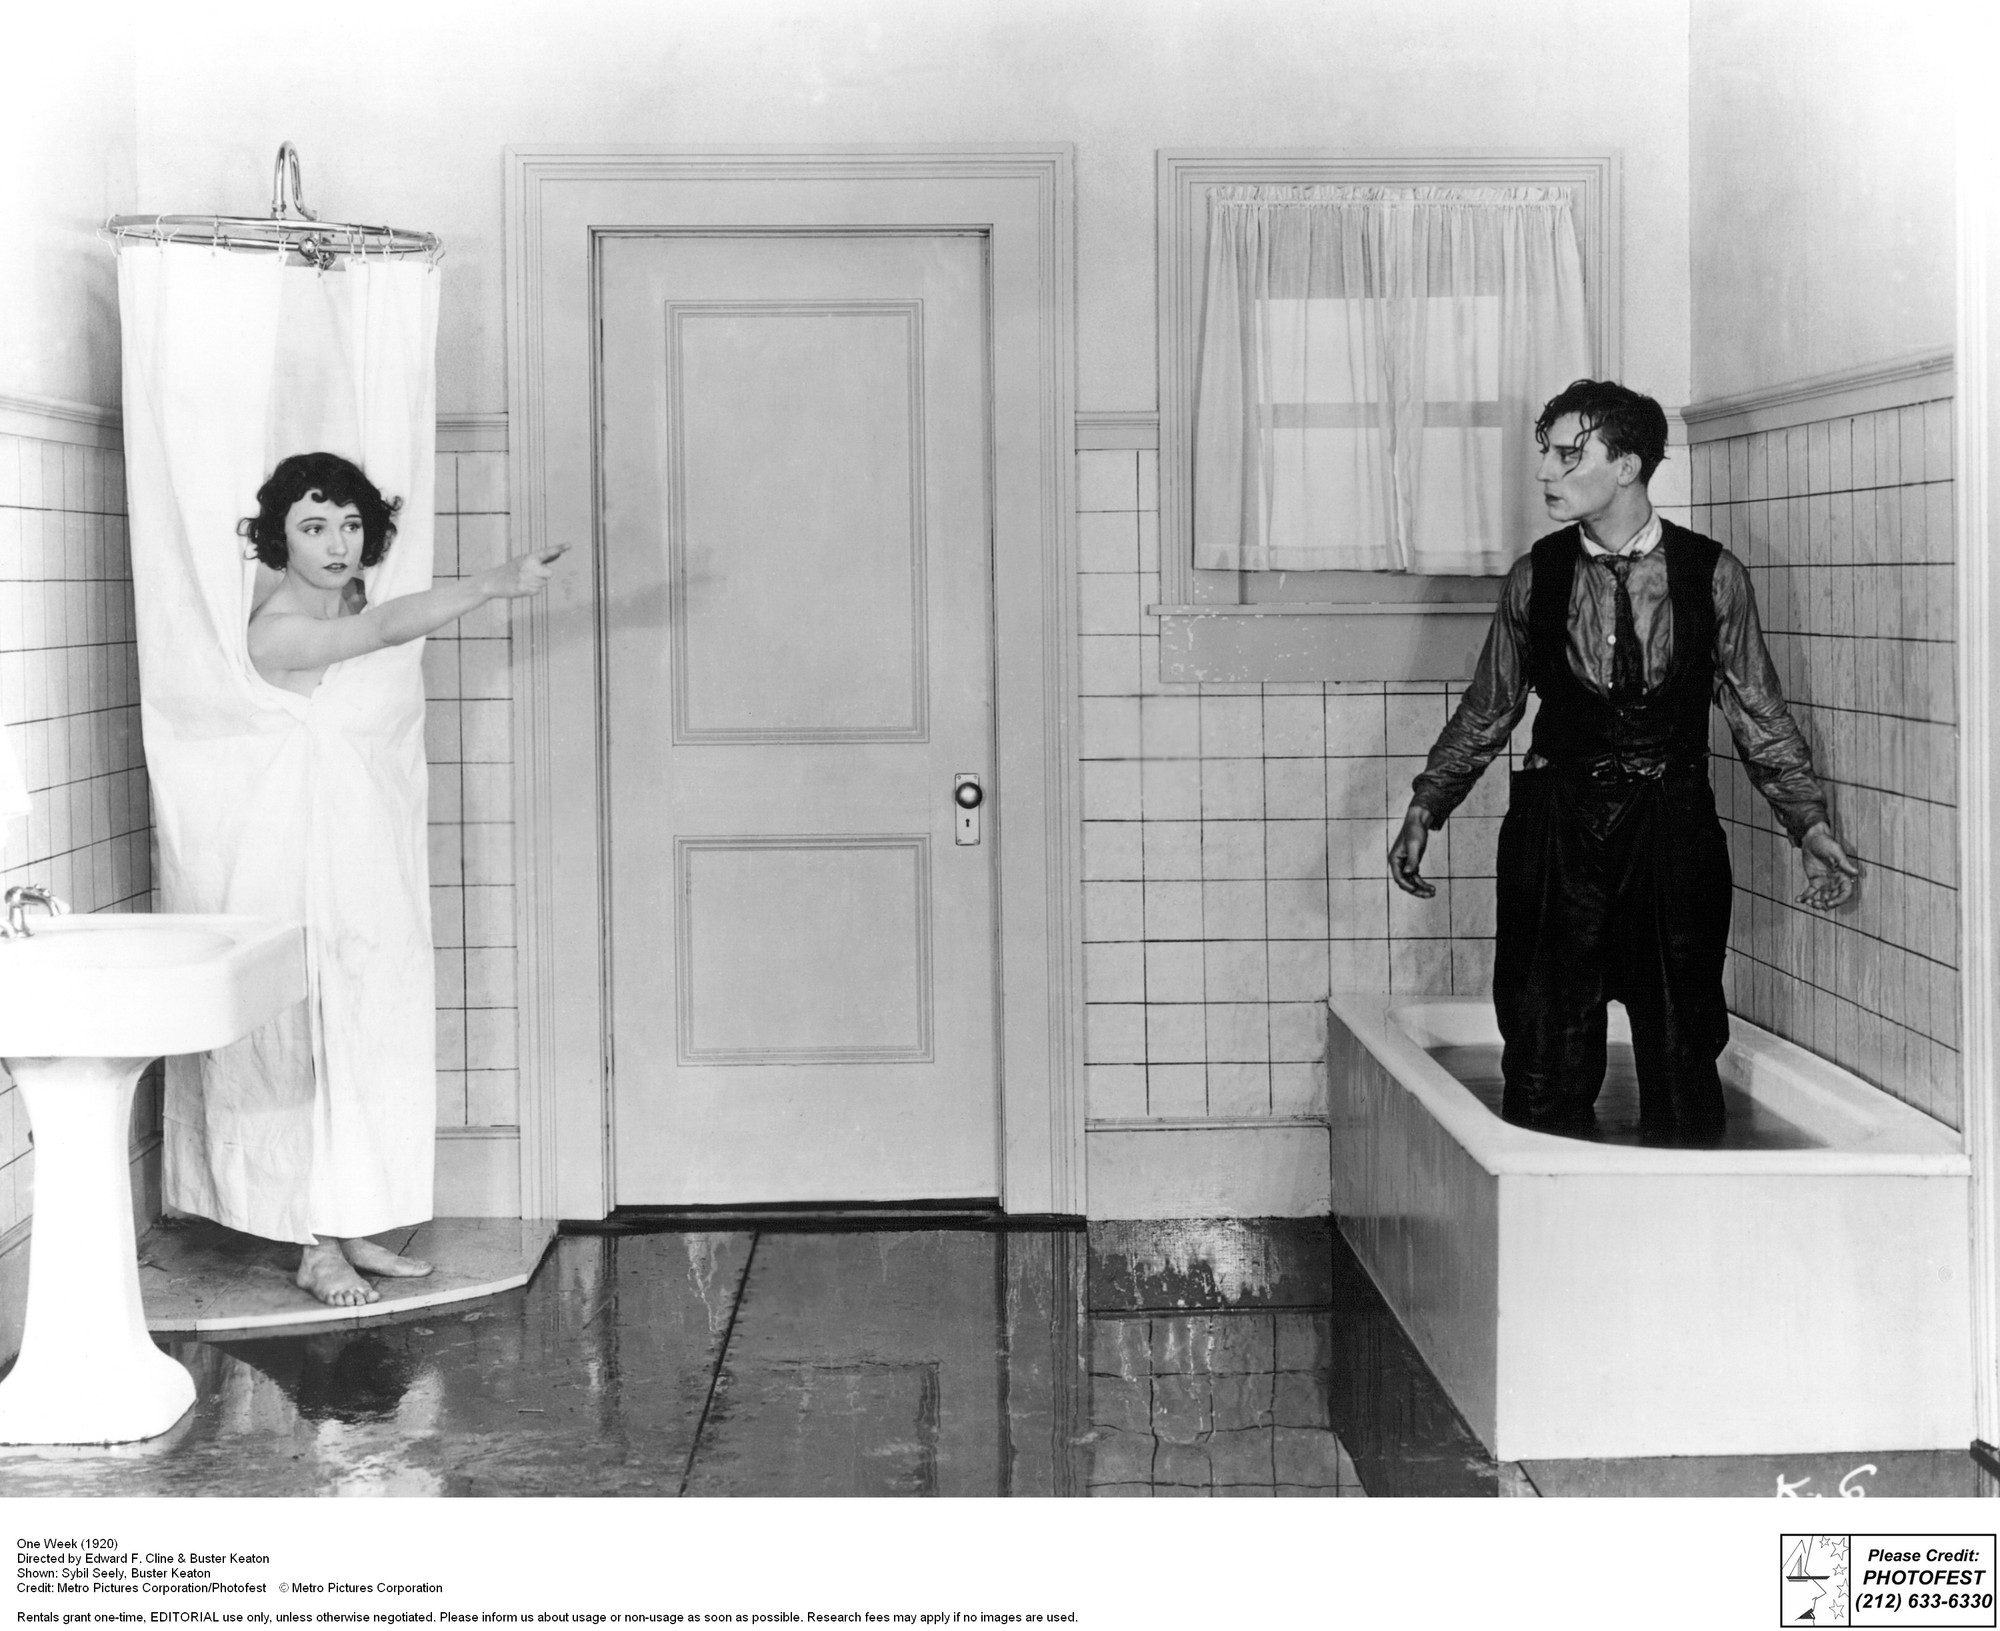 One Week. 1920. USA. Directed by Buster Keaton and F. Edward Klein. © Metro Pictures Corporation. Courtesy Photofest